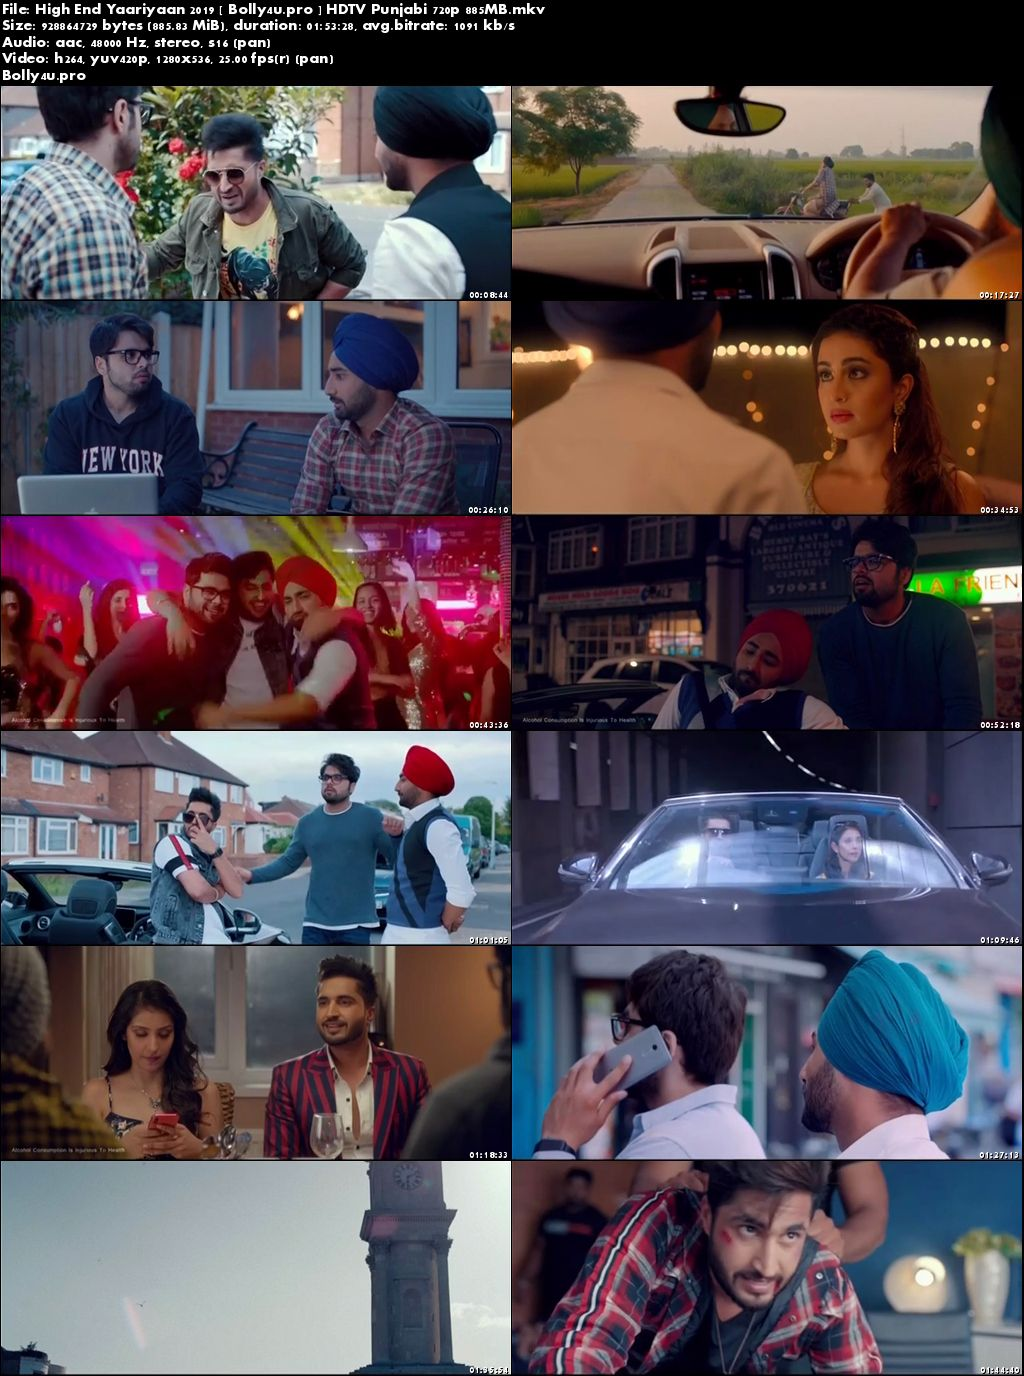 High End Yaariyaan 2019 HDTV 350MB Punjabi 480p Download